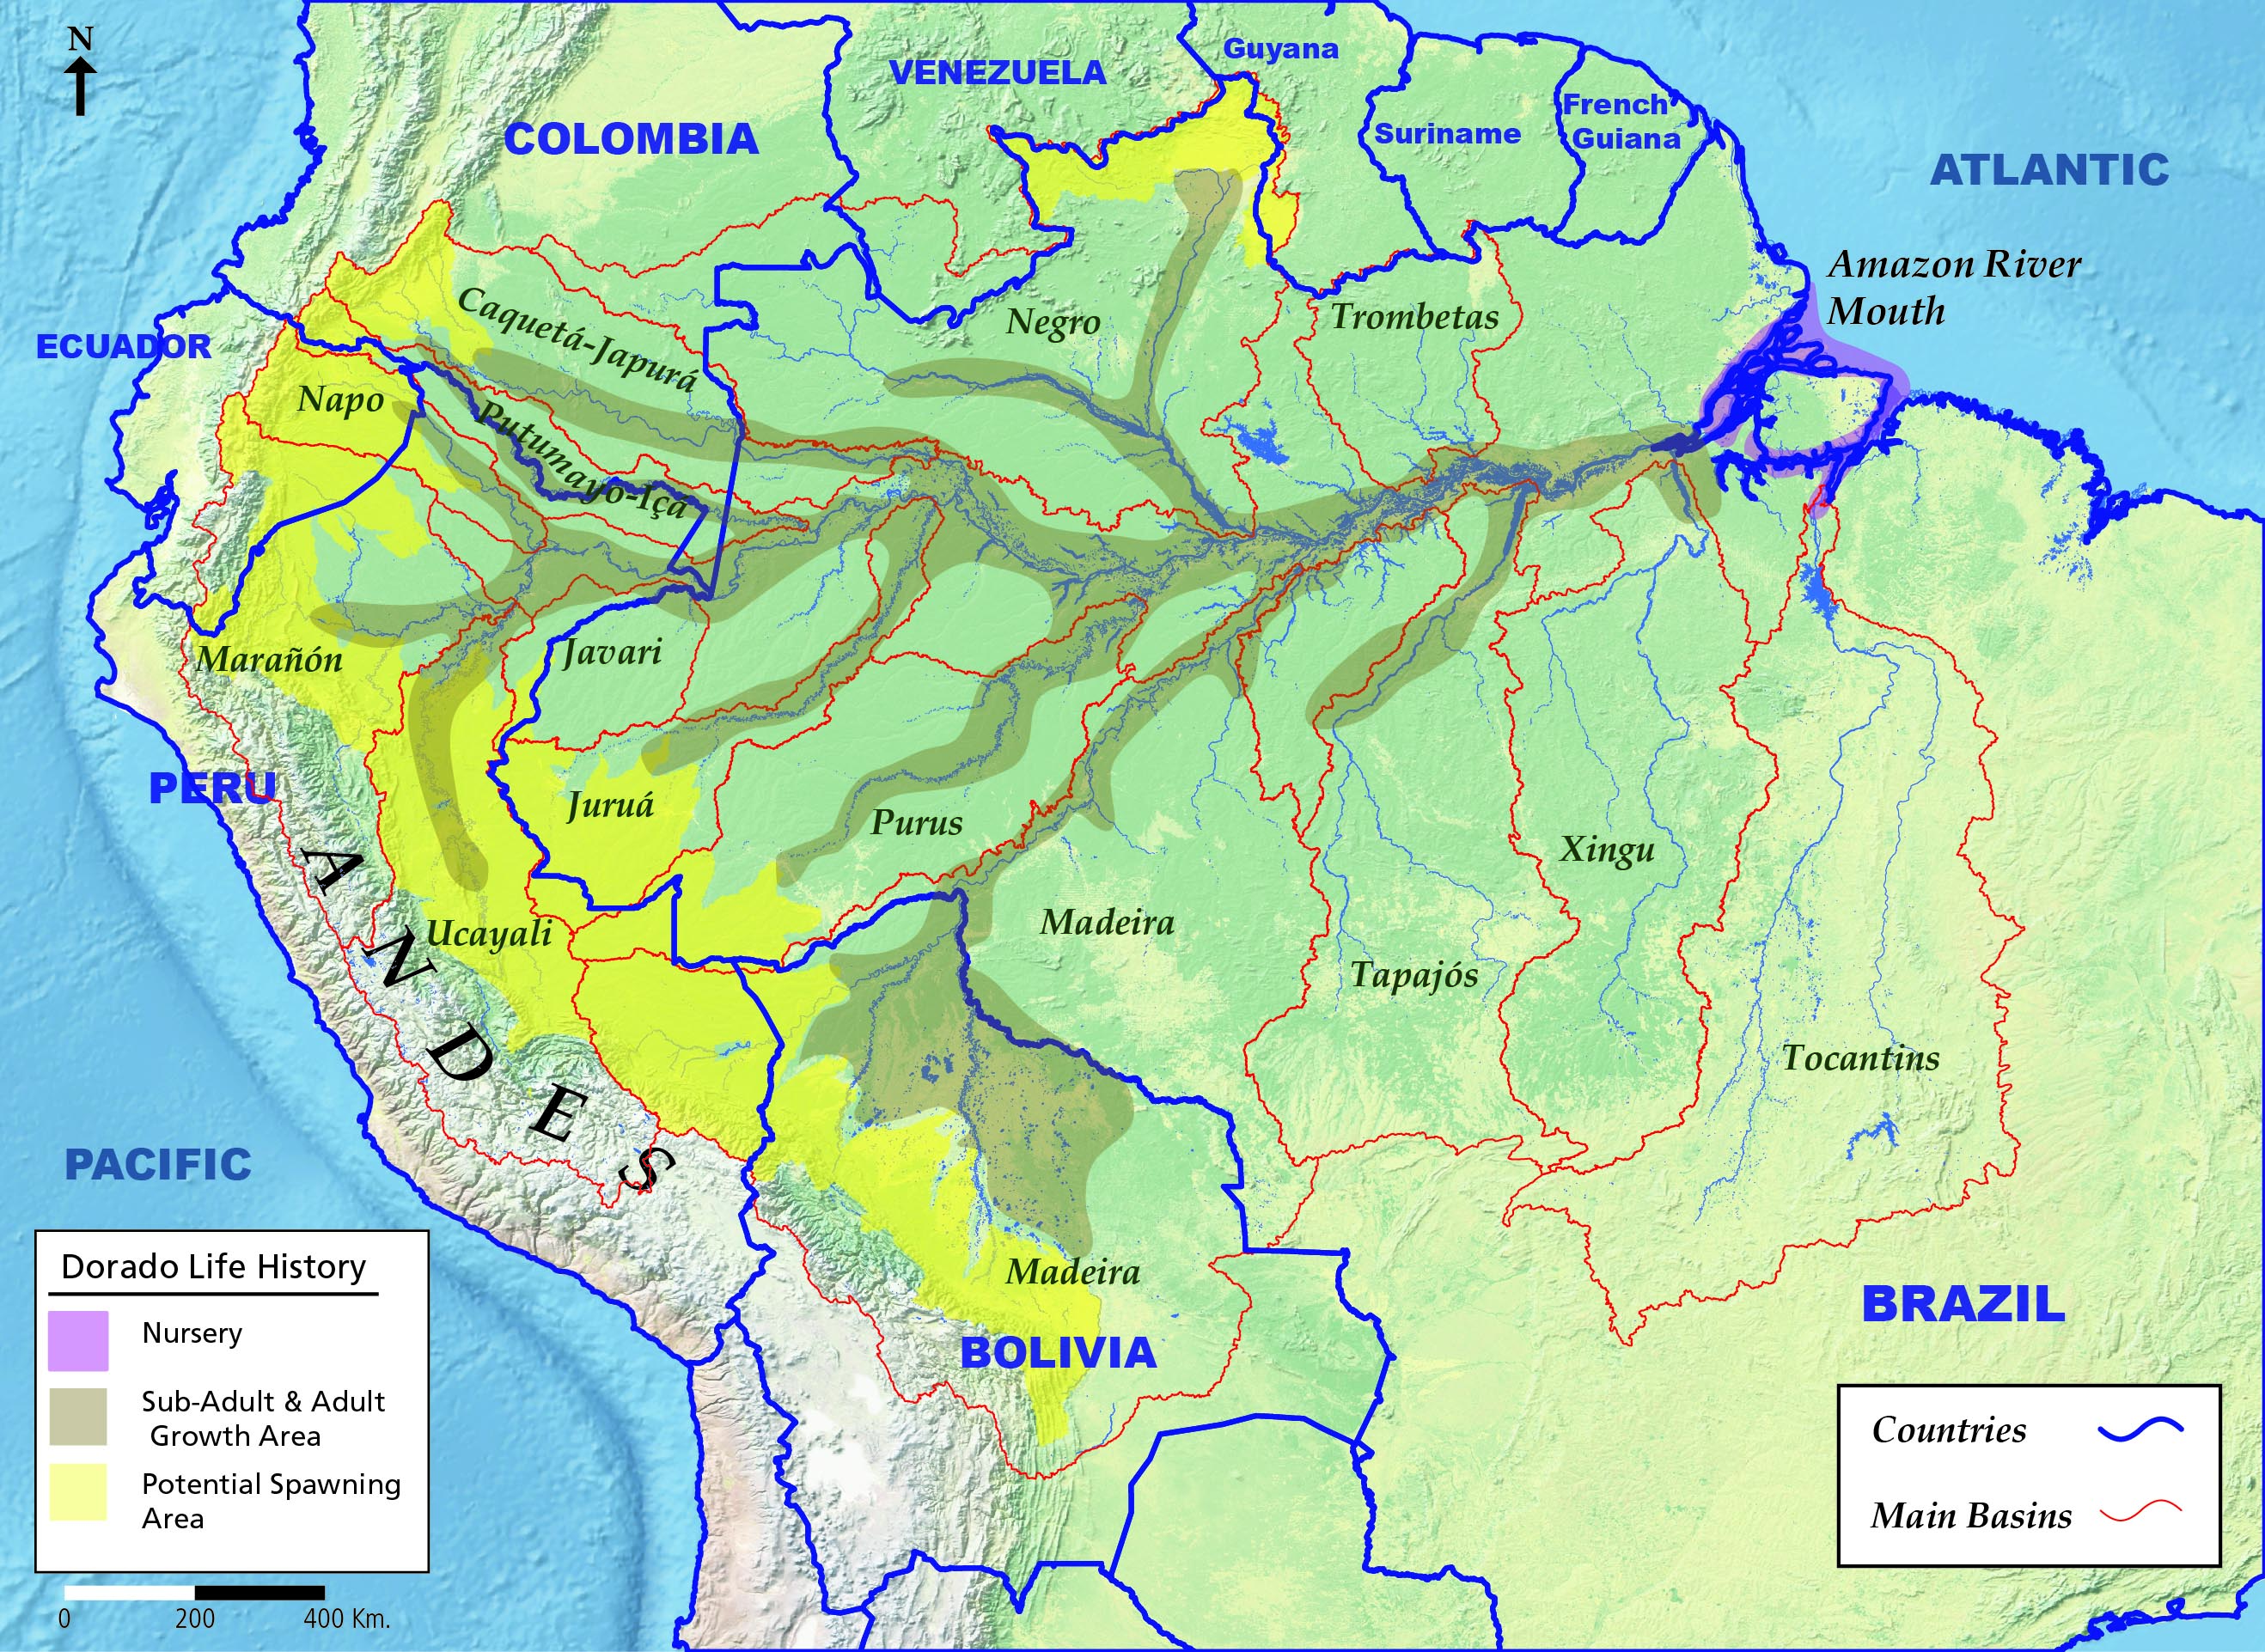 Giant catfish clocks longest ever freshwater migration map of the dorado catfishs life cycle migration through the amazon river basin map courtesy of wcs gumiabroncs Gallery